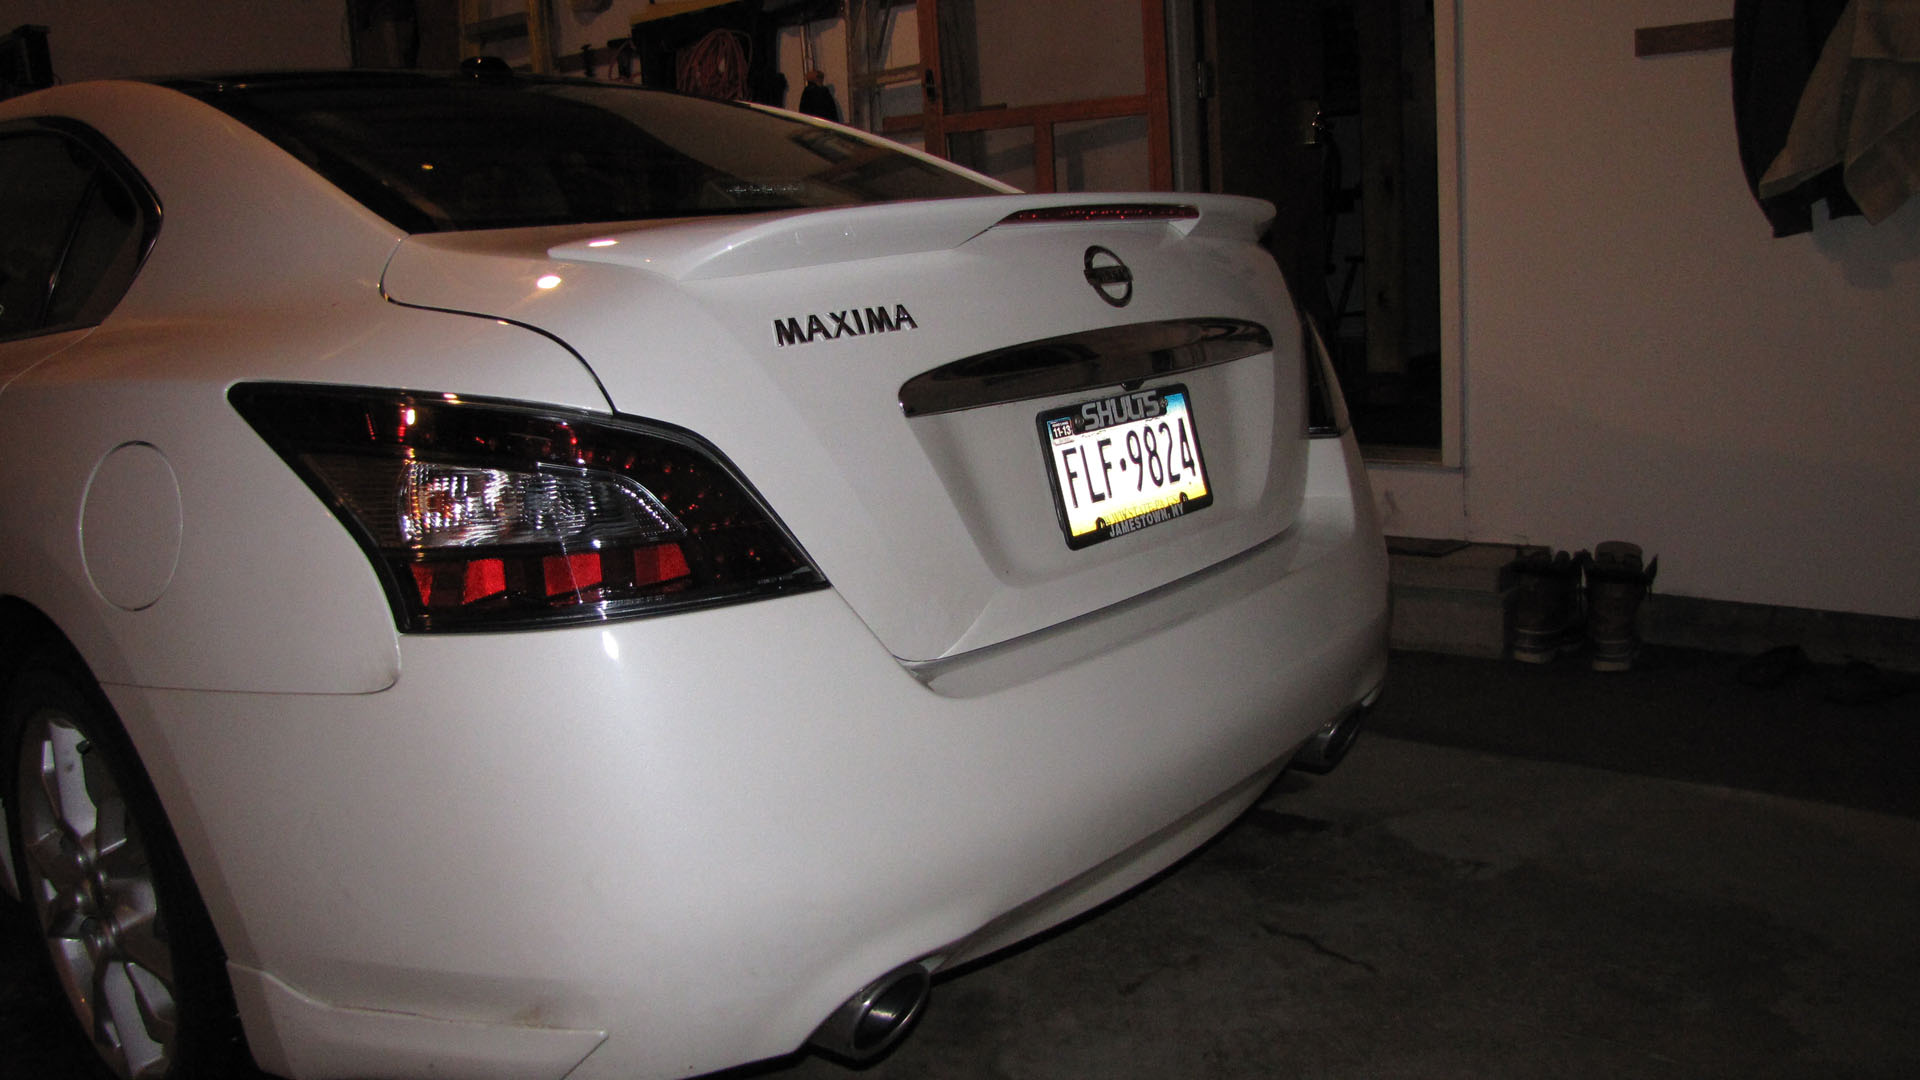 Oem Spoiler Installed On 2012 Maxima Maxima Forums